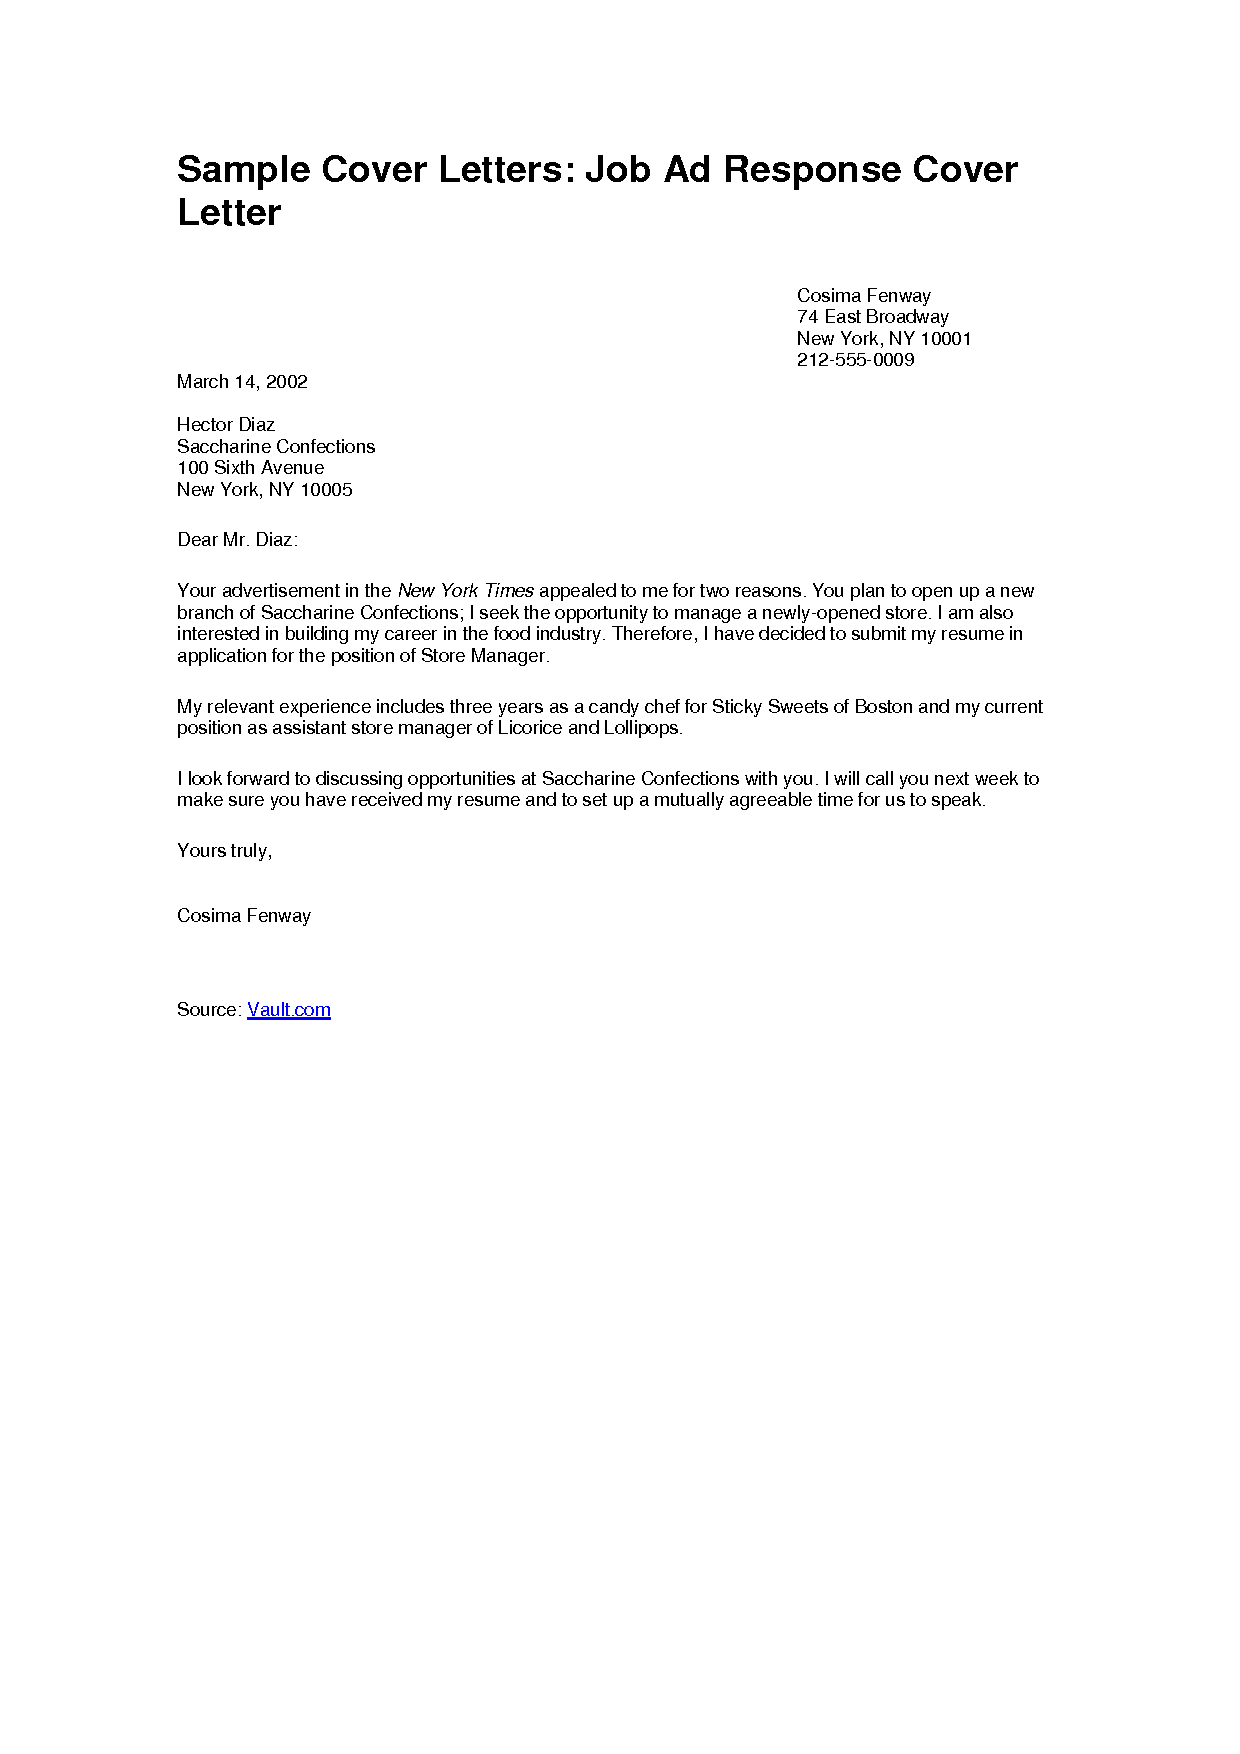 Sample cover letter for applying a job for Cover letter for potential job opening